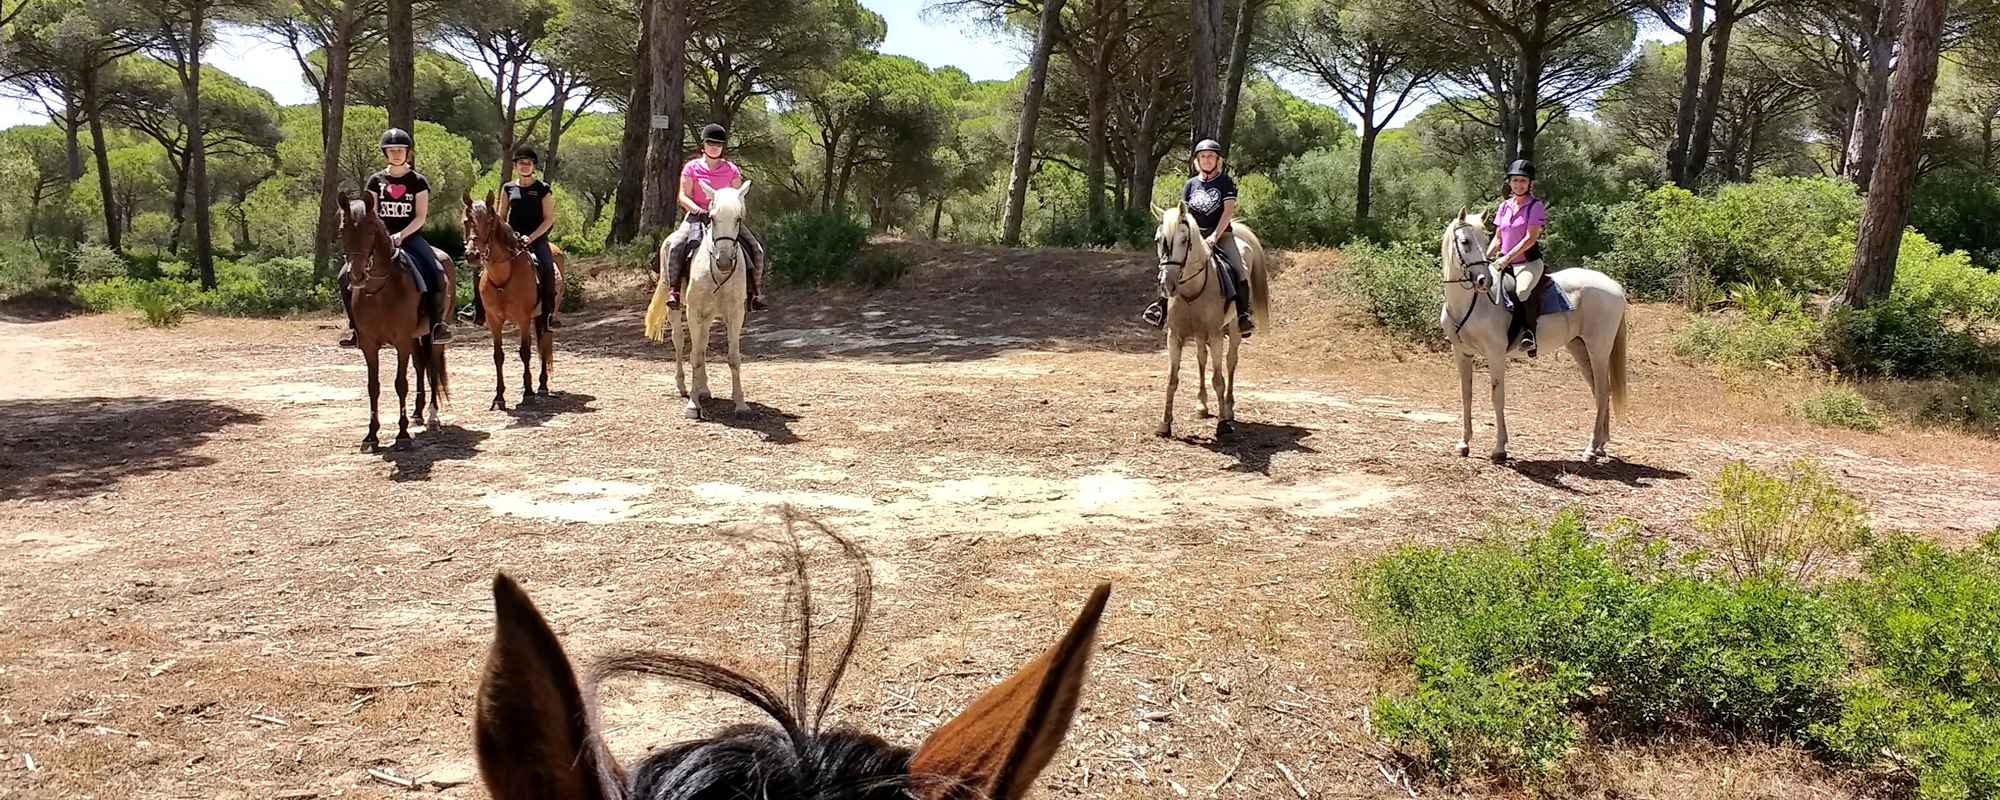 Horse riding holidays with lovely views